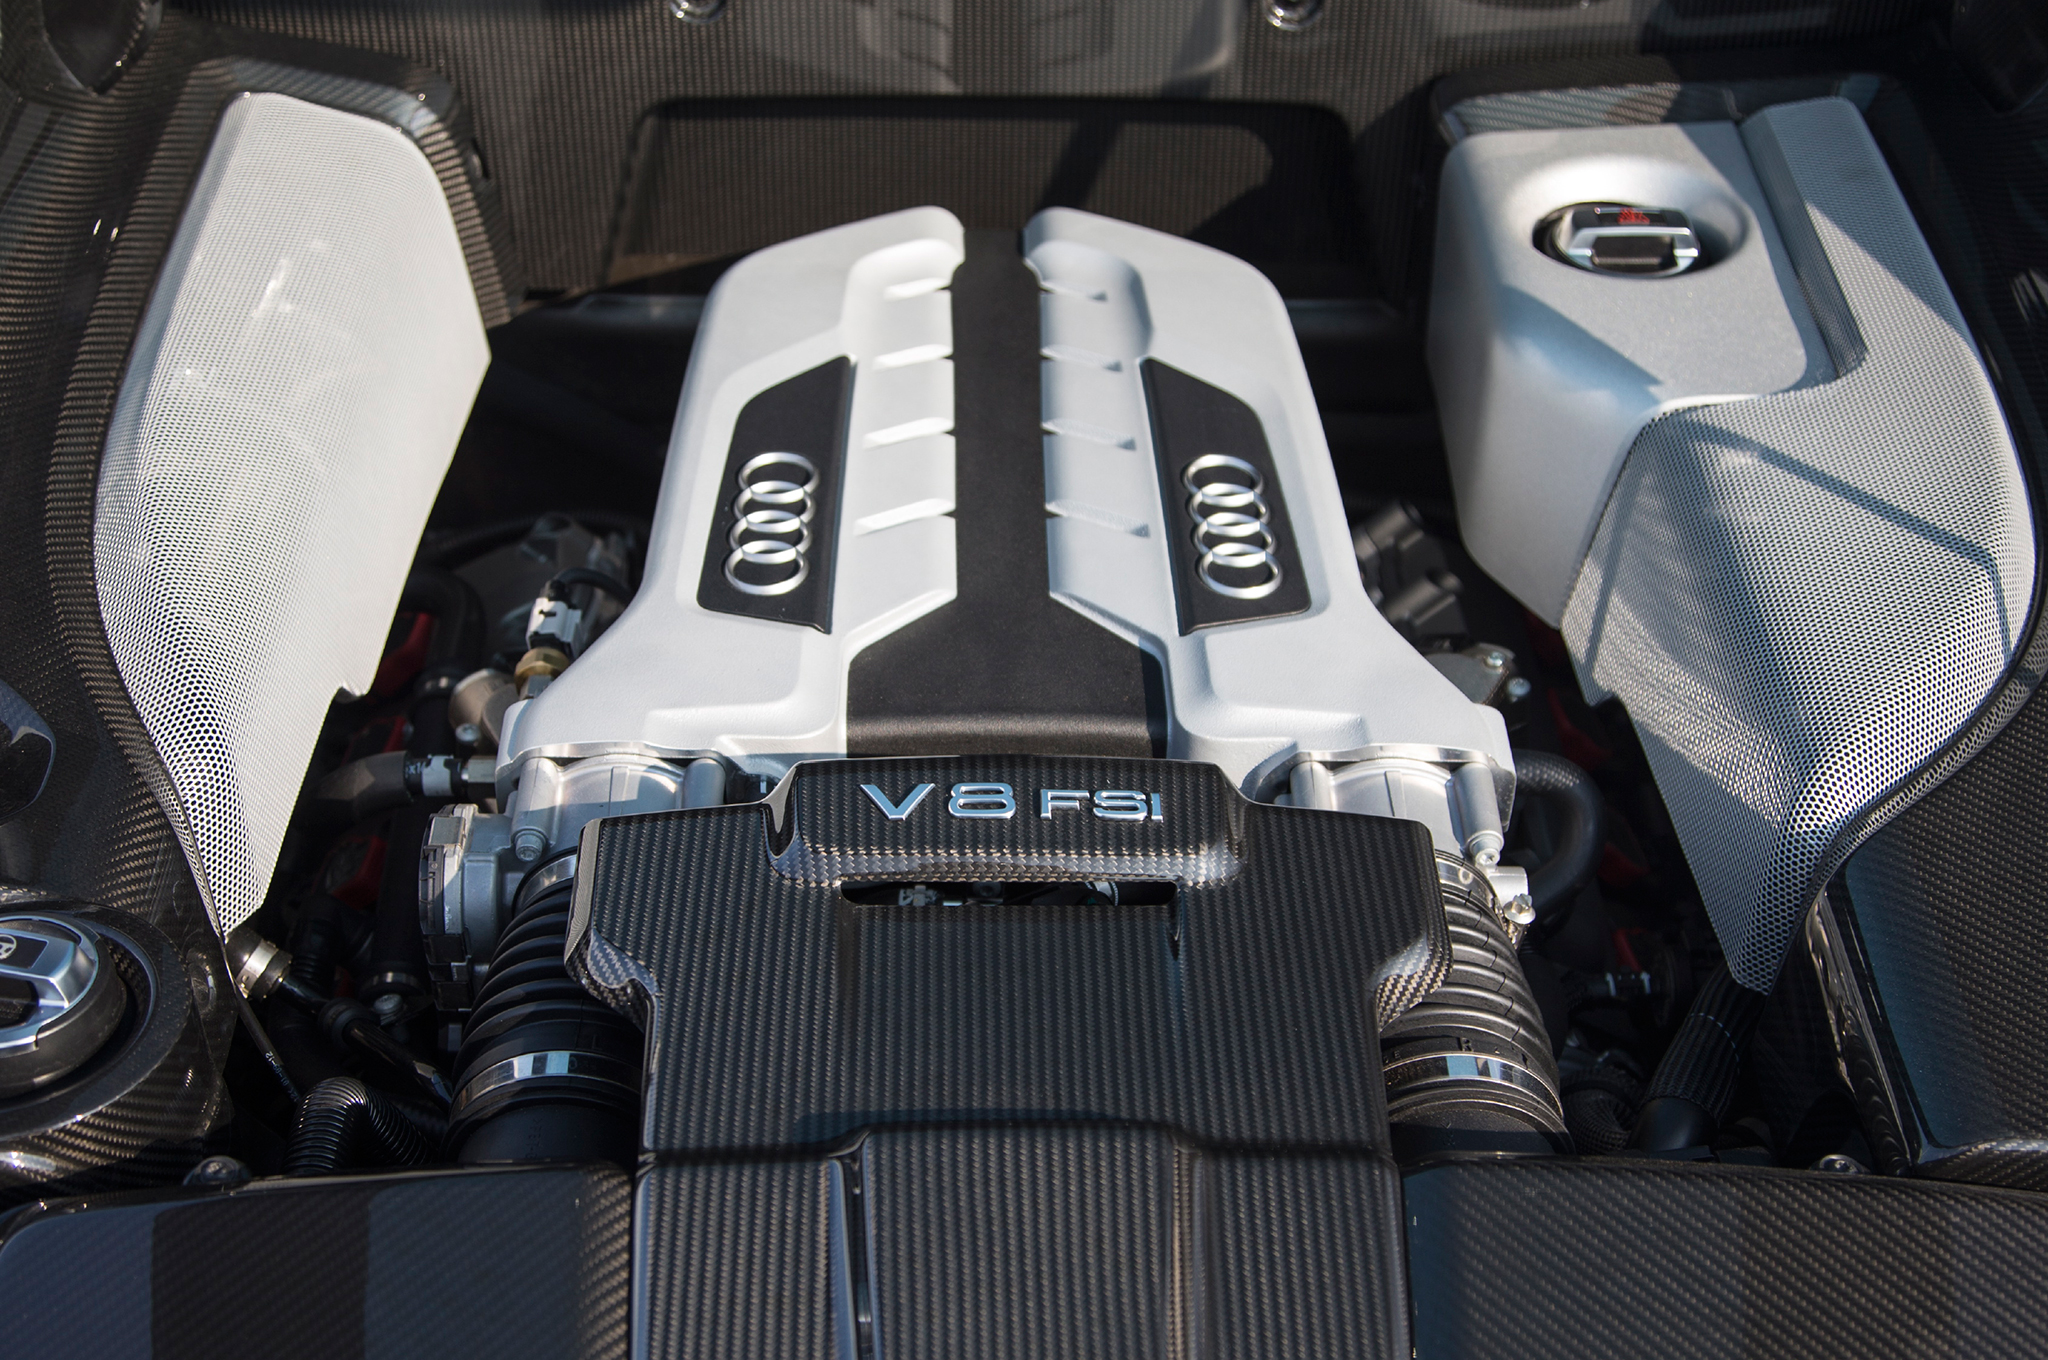 The V8 engine is the heart of the R8.